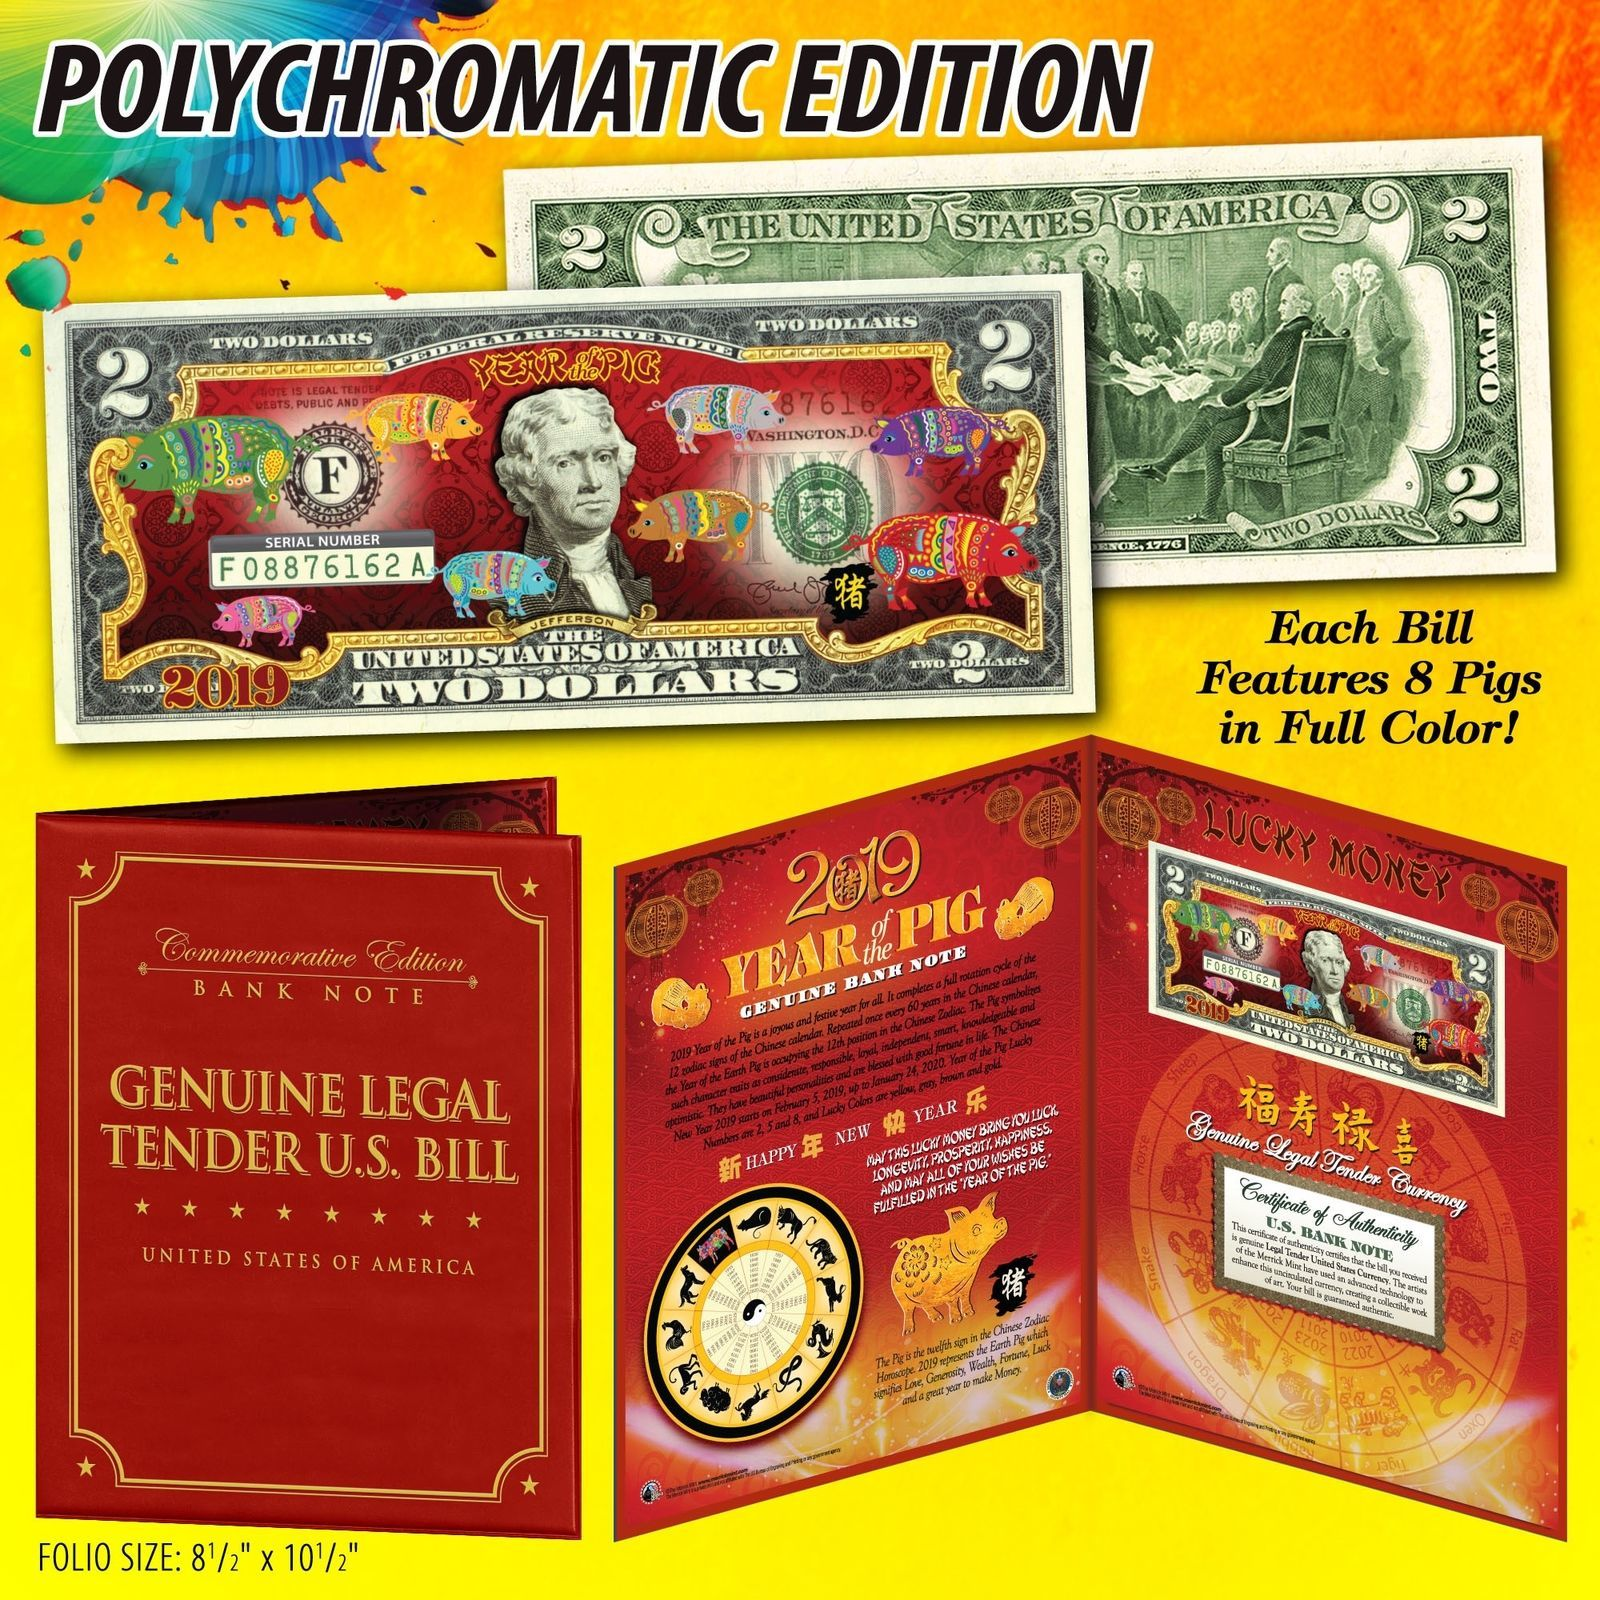 2019 Lunar Chinese New YEAR OF THE PIG Polychrome 8 Pigs $2 Bill in 8x10 Folio - $18.65